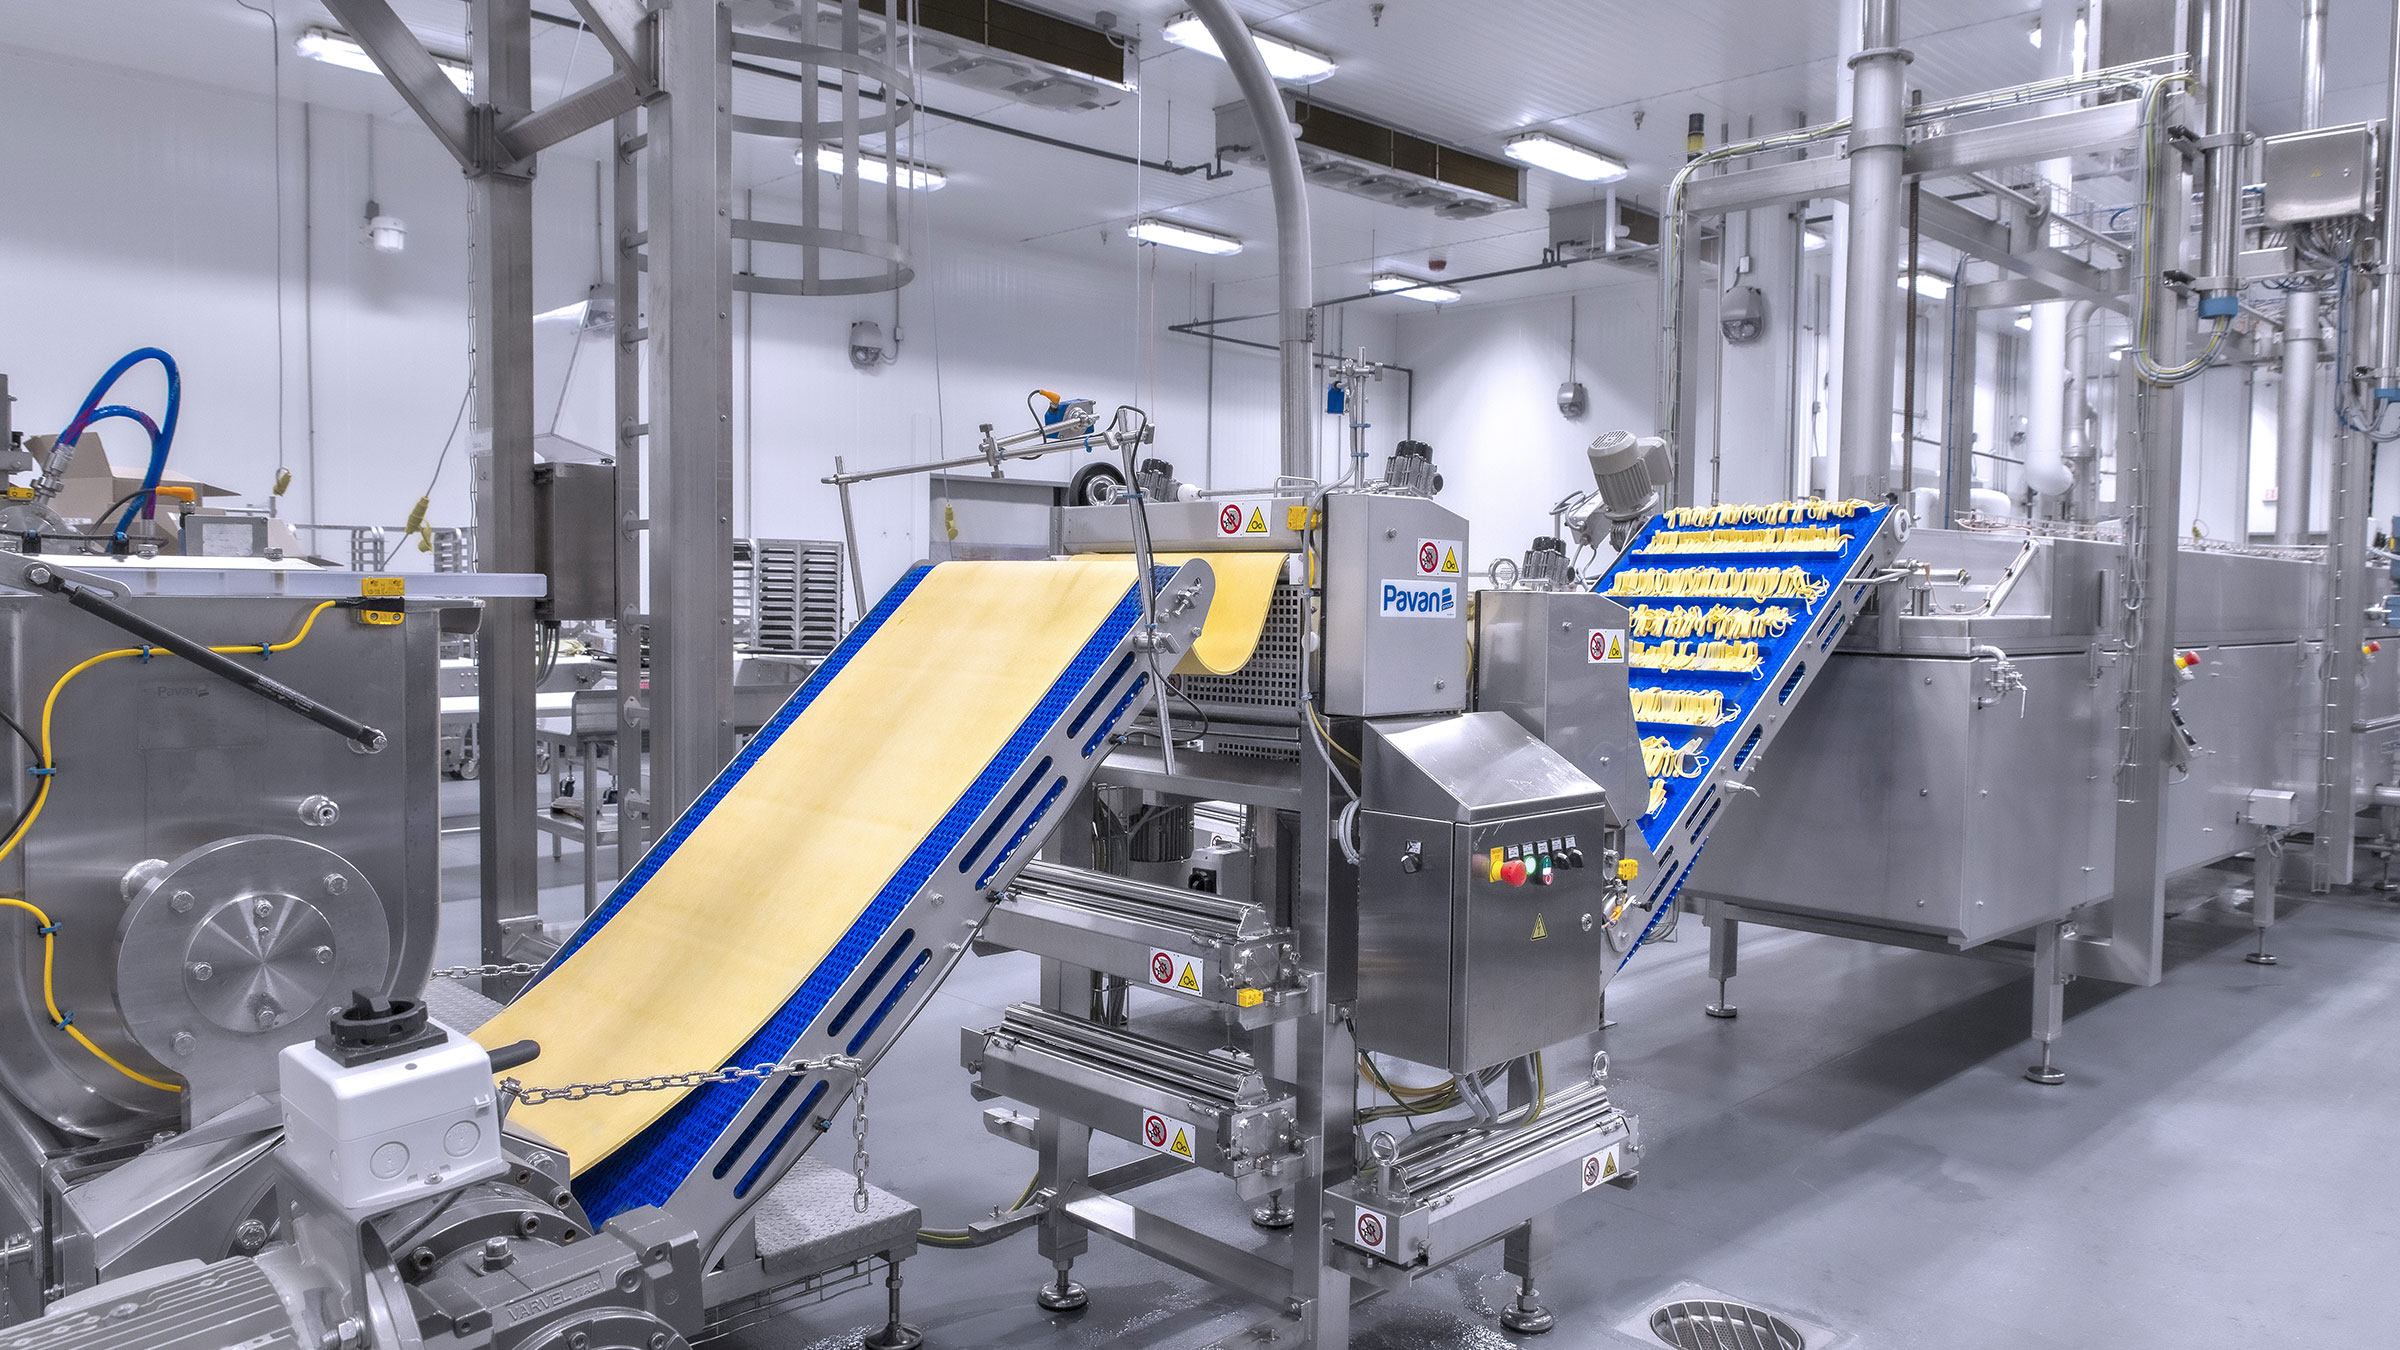 Mazzone pasta manufacturing equipment supplied by Pavan